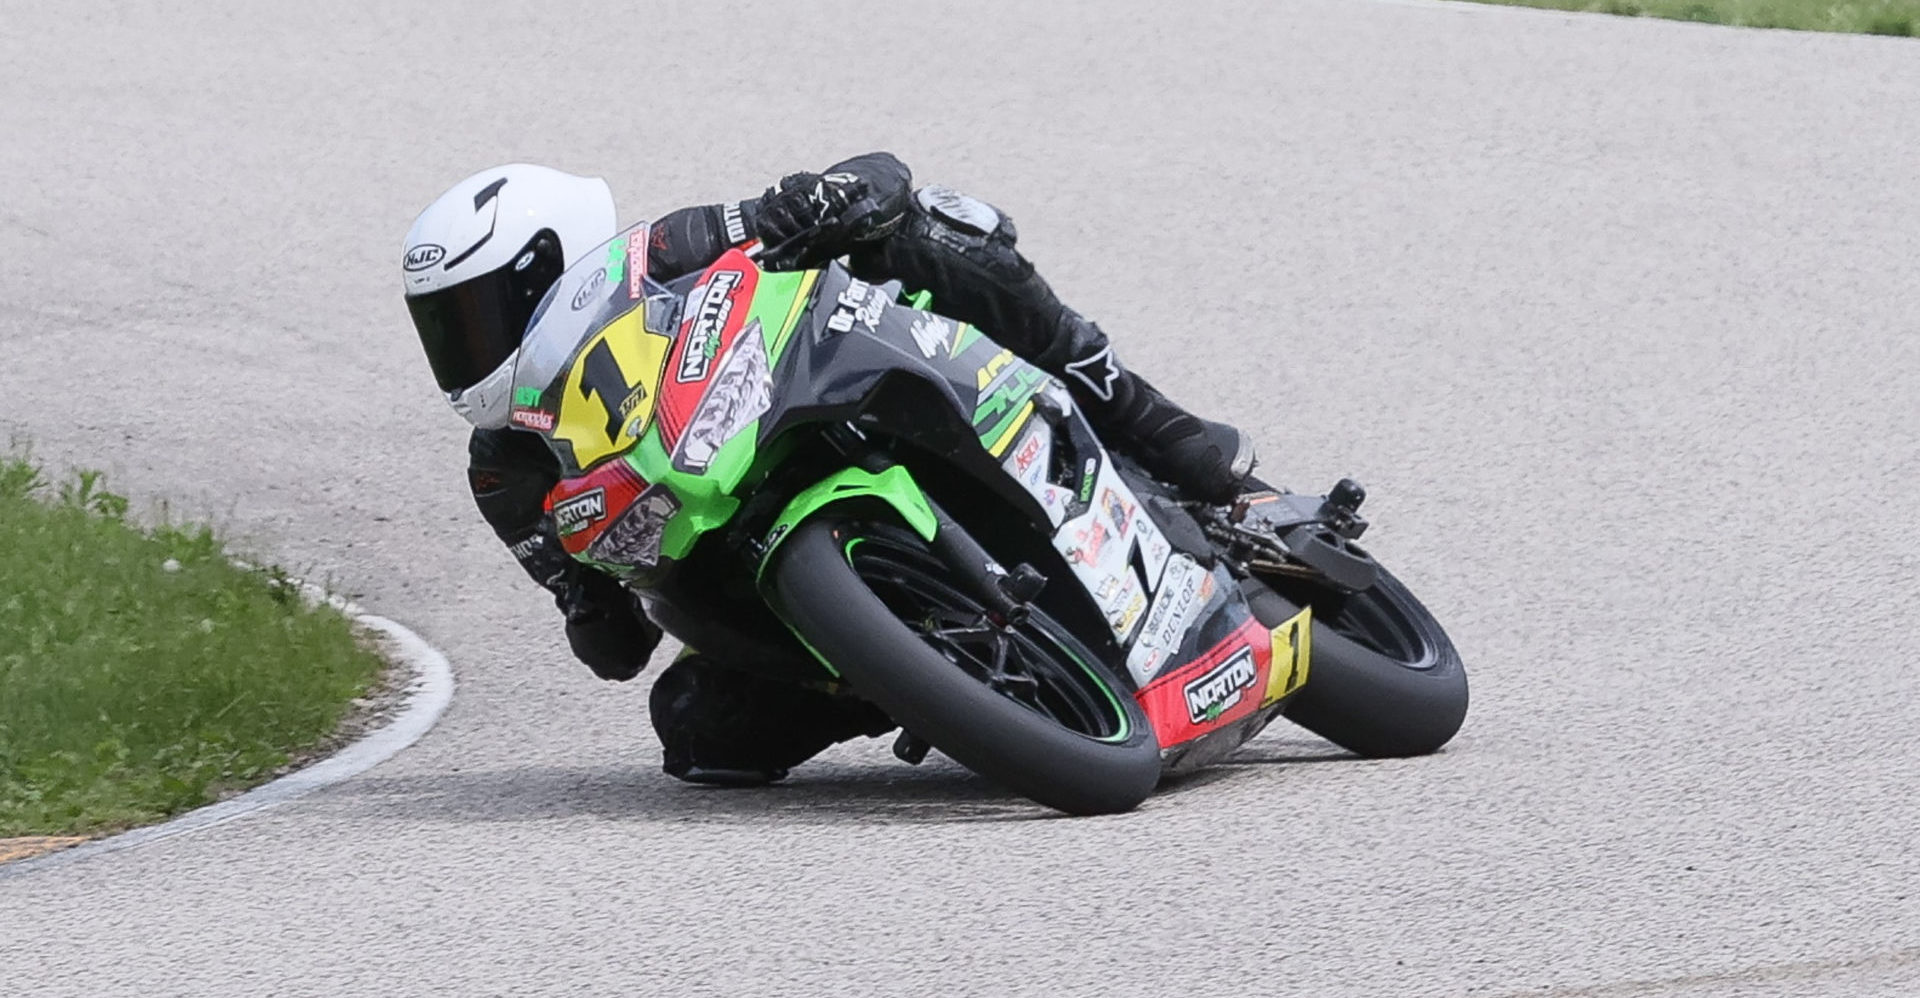 Rocco Landers (1). Photo by Brian J. Nelson, courtesy MotoAmerica.